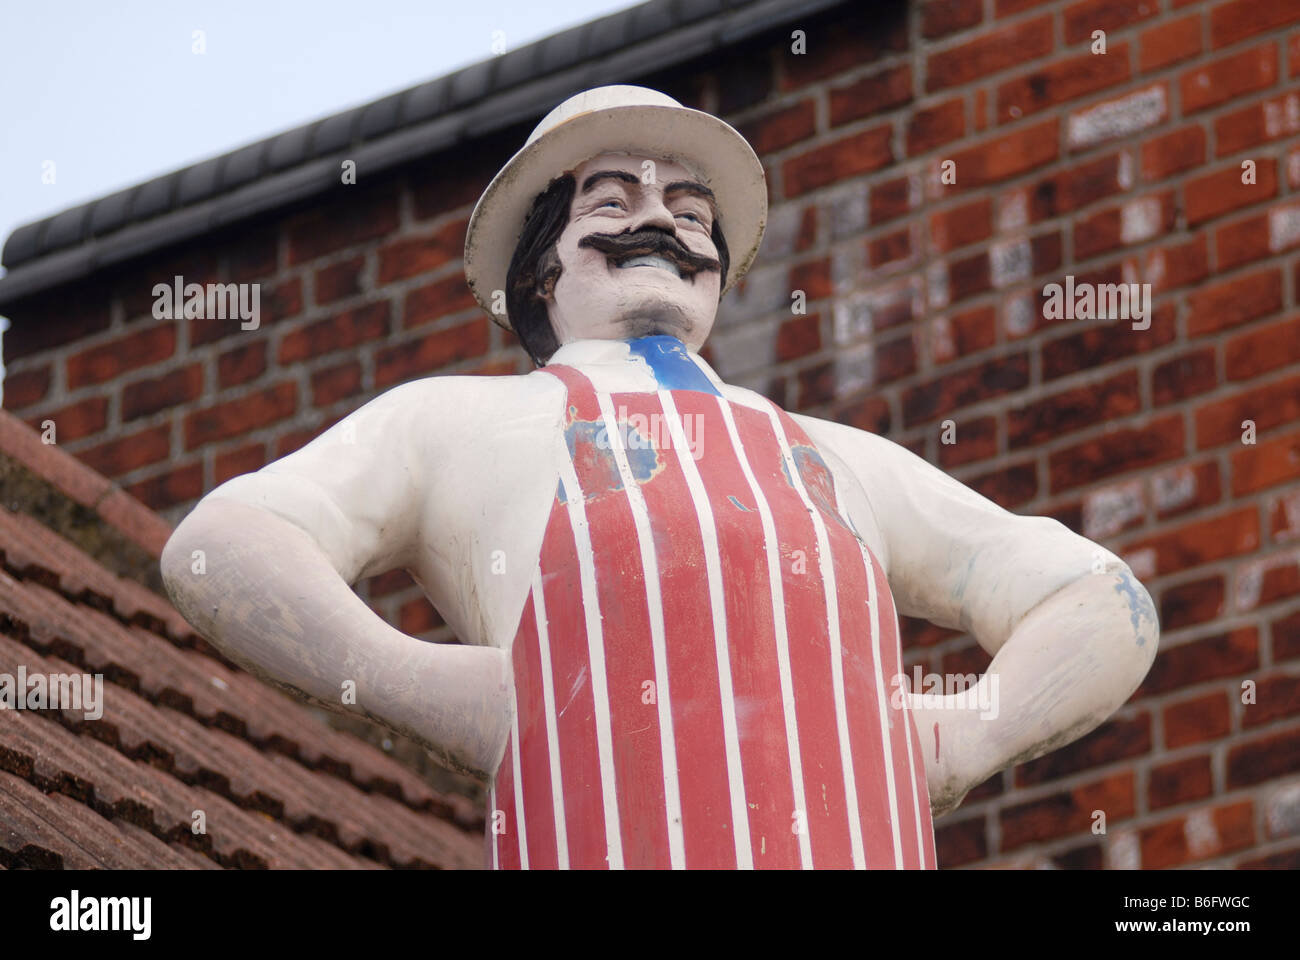 Model of a butcher outside a butchers shop in Bedford UK 2008 - Stock Image